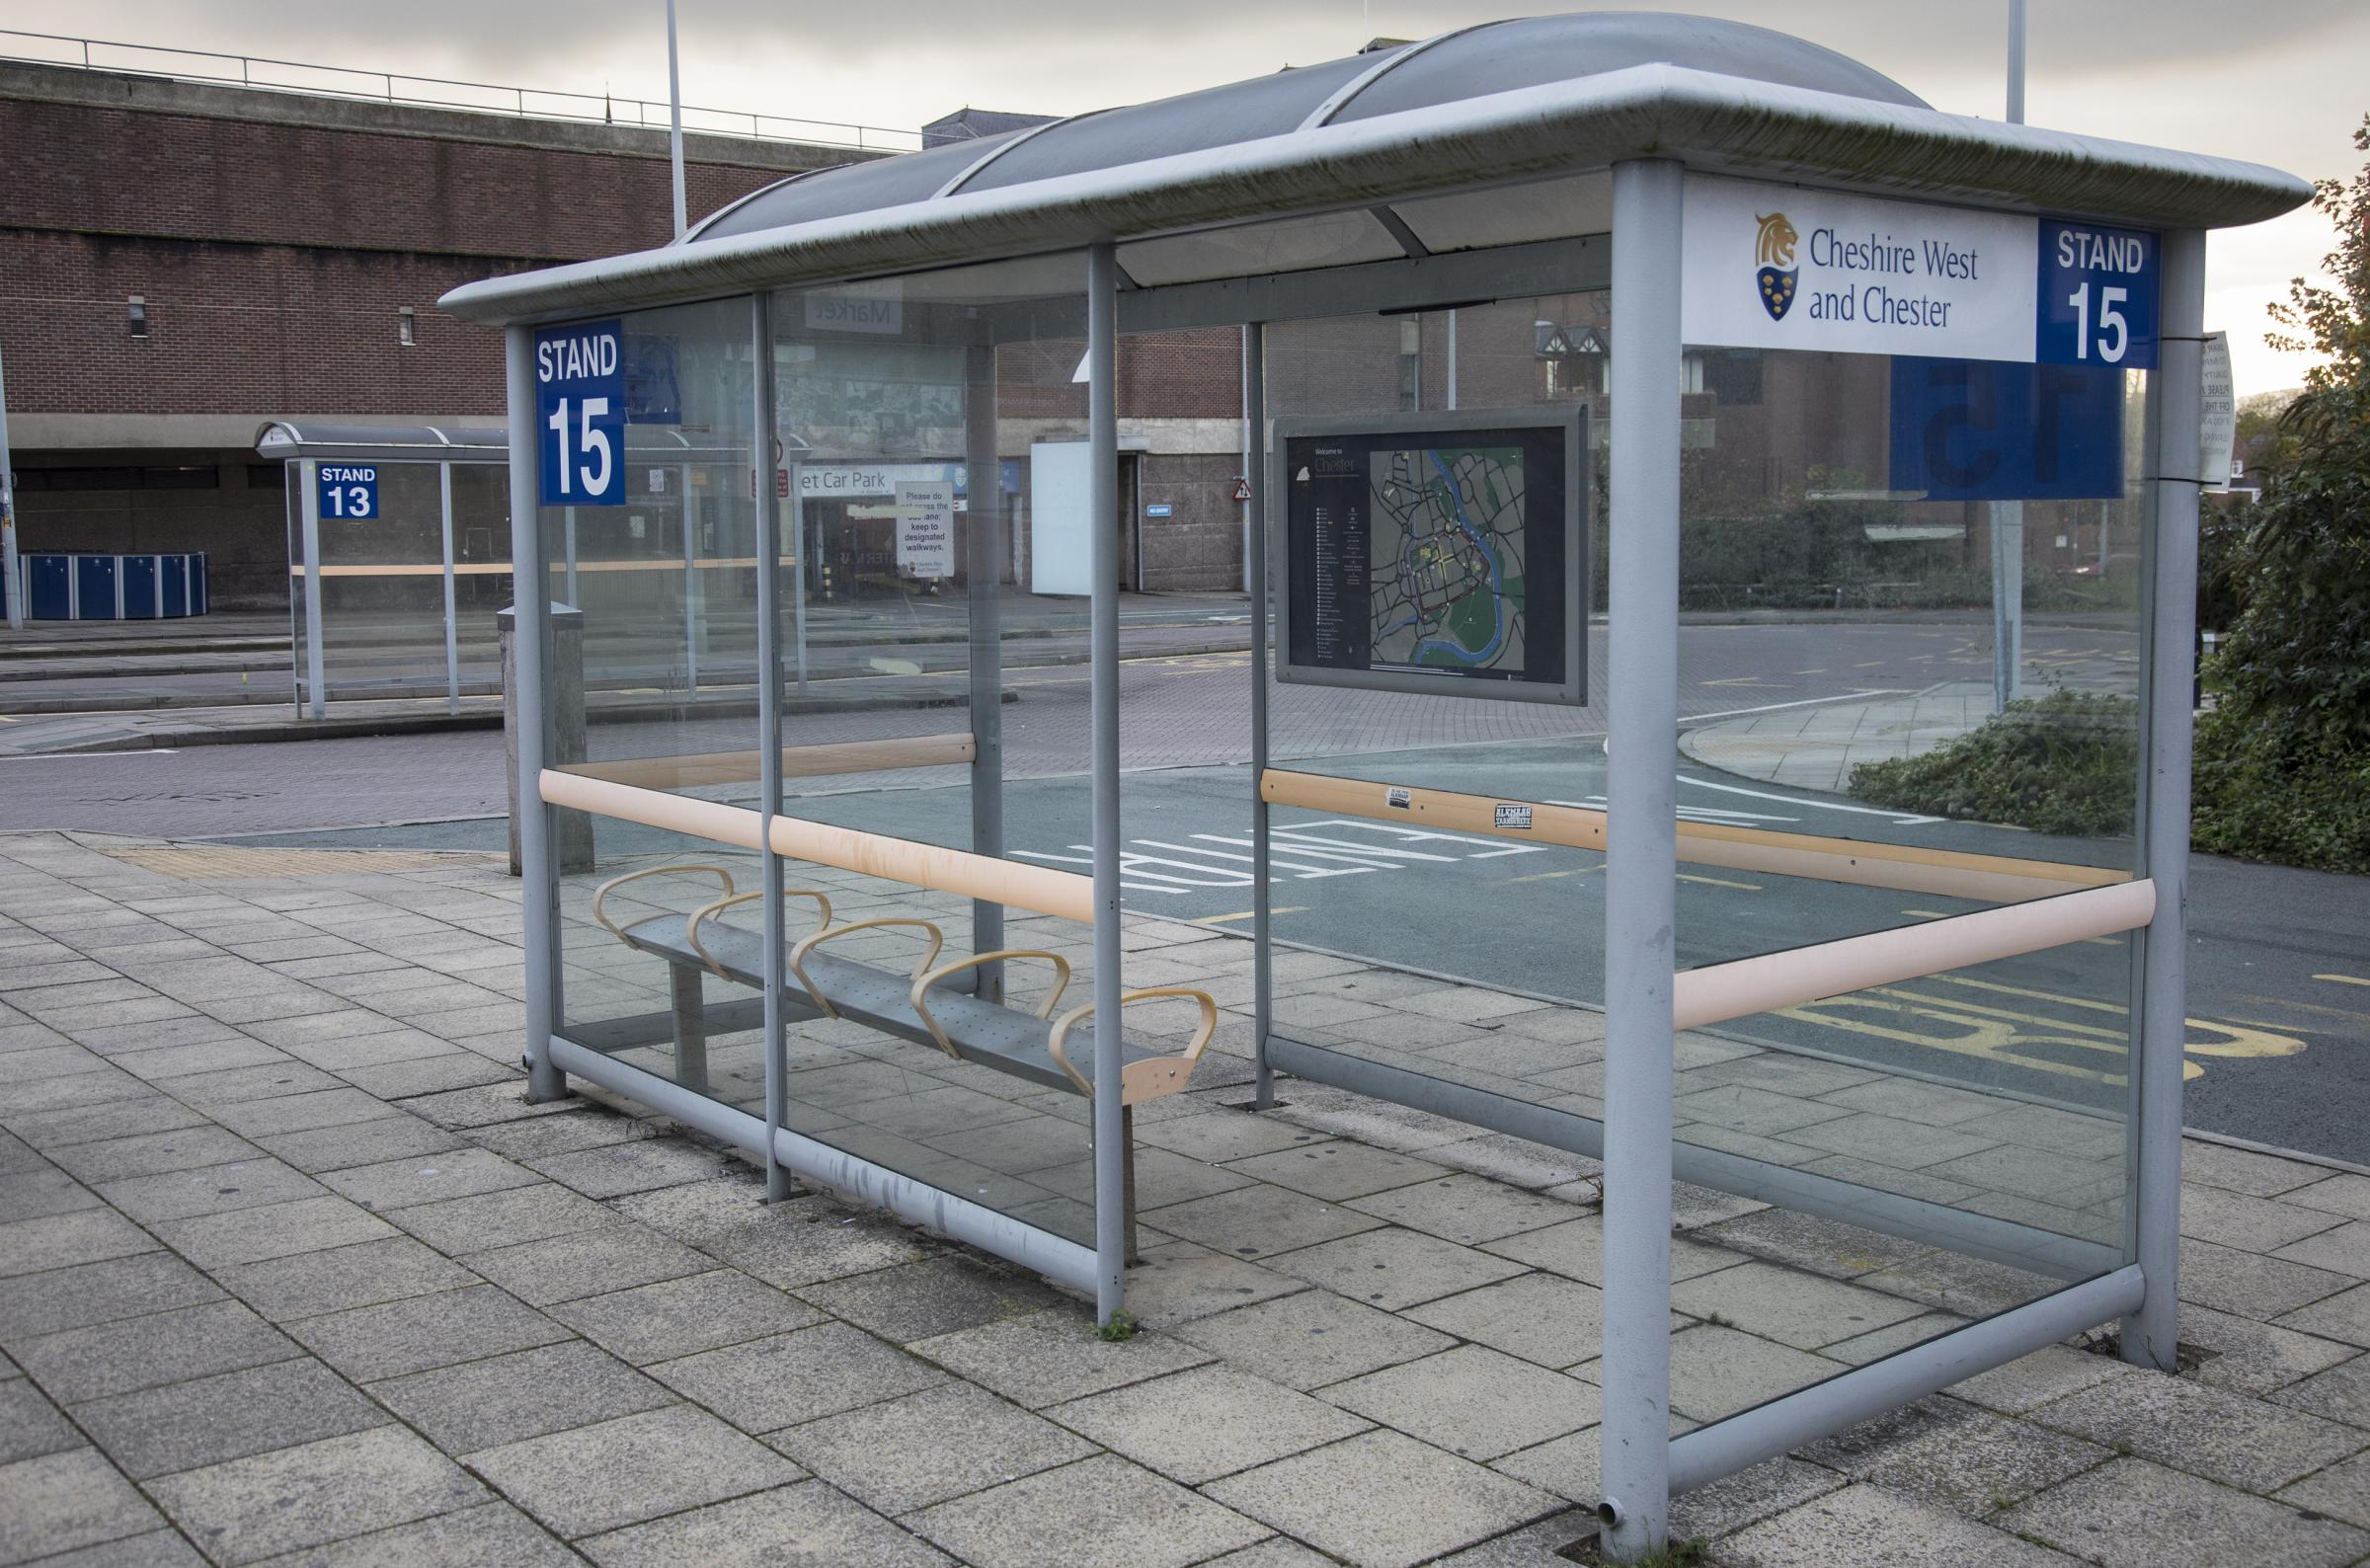 Council offers free bus shelters to local community groups - Northwich Guardian